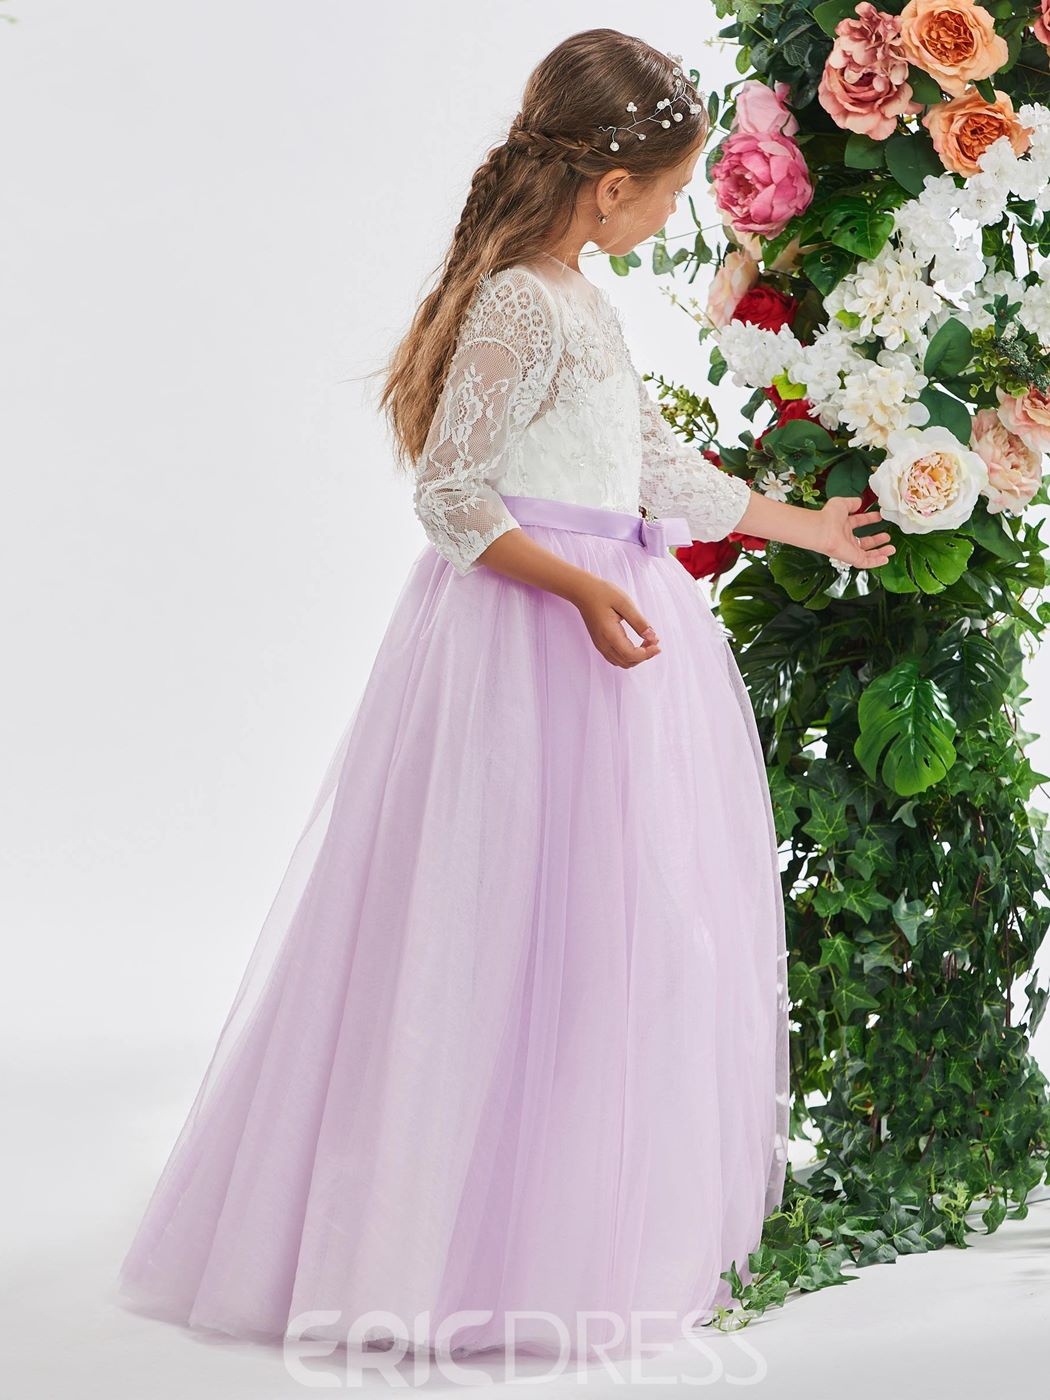 Ericdress Bowknot Long Sleeves A-Line Lace Flower Girl Dress